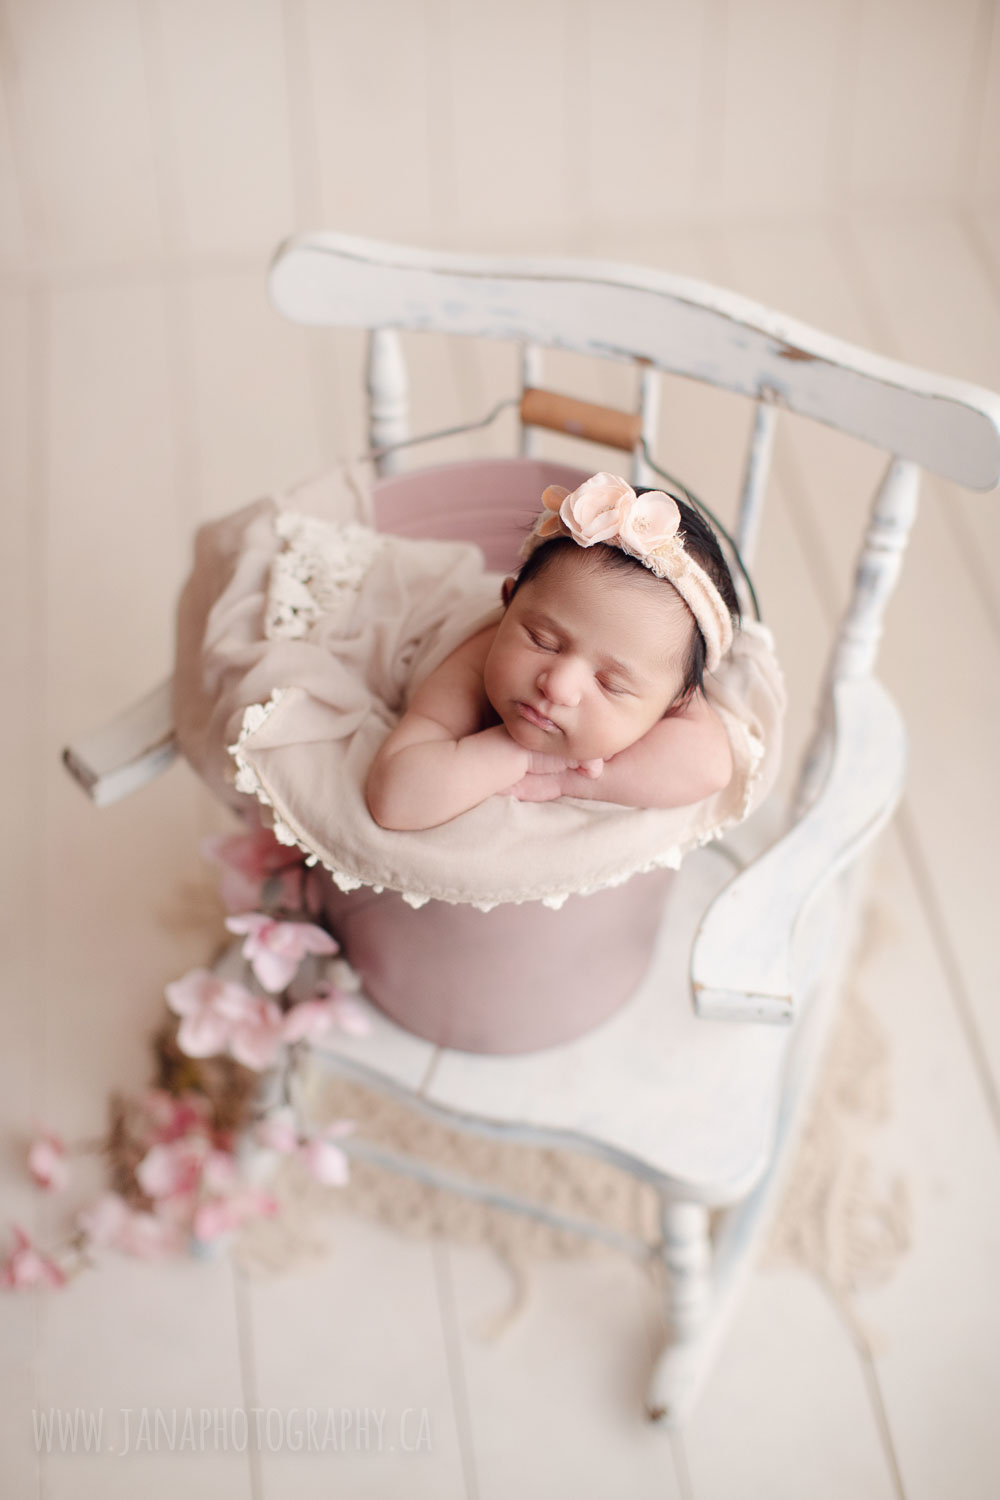 newborn baby girl in a pink bucket and white chair - Vancouver - janaphotography